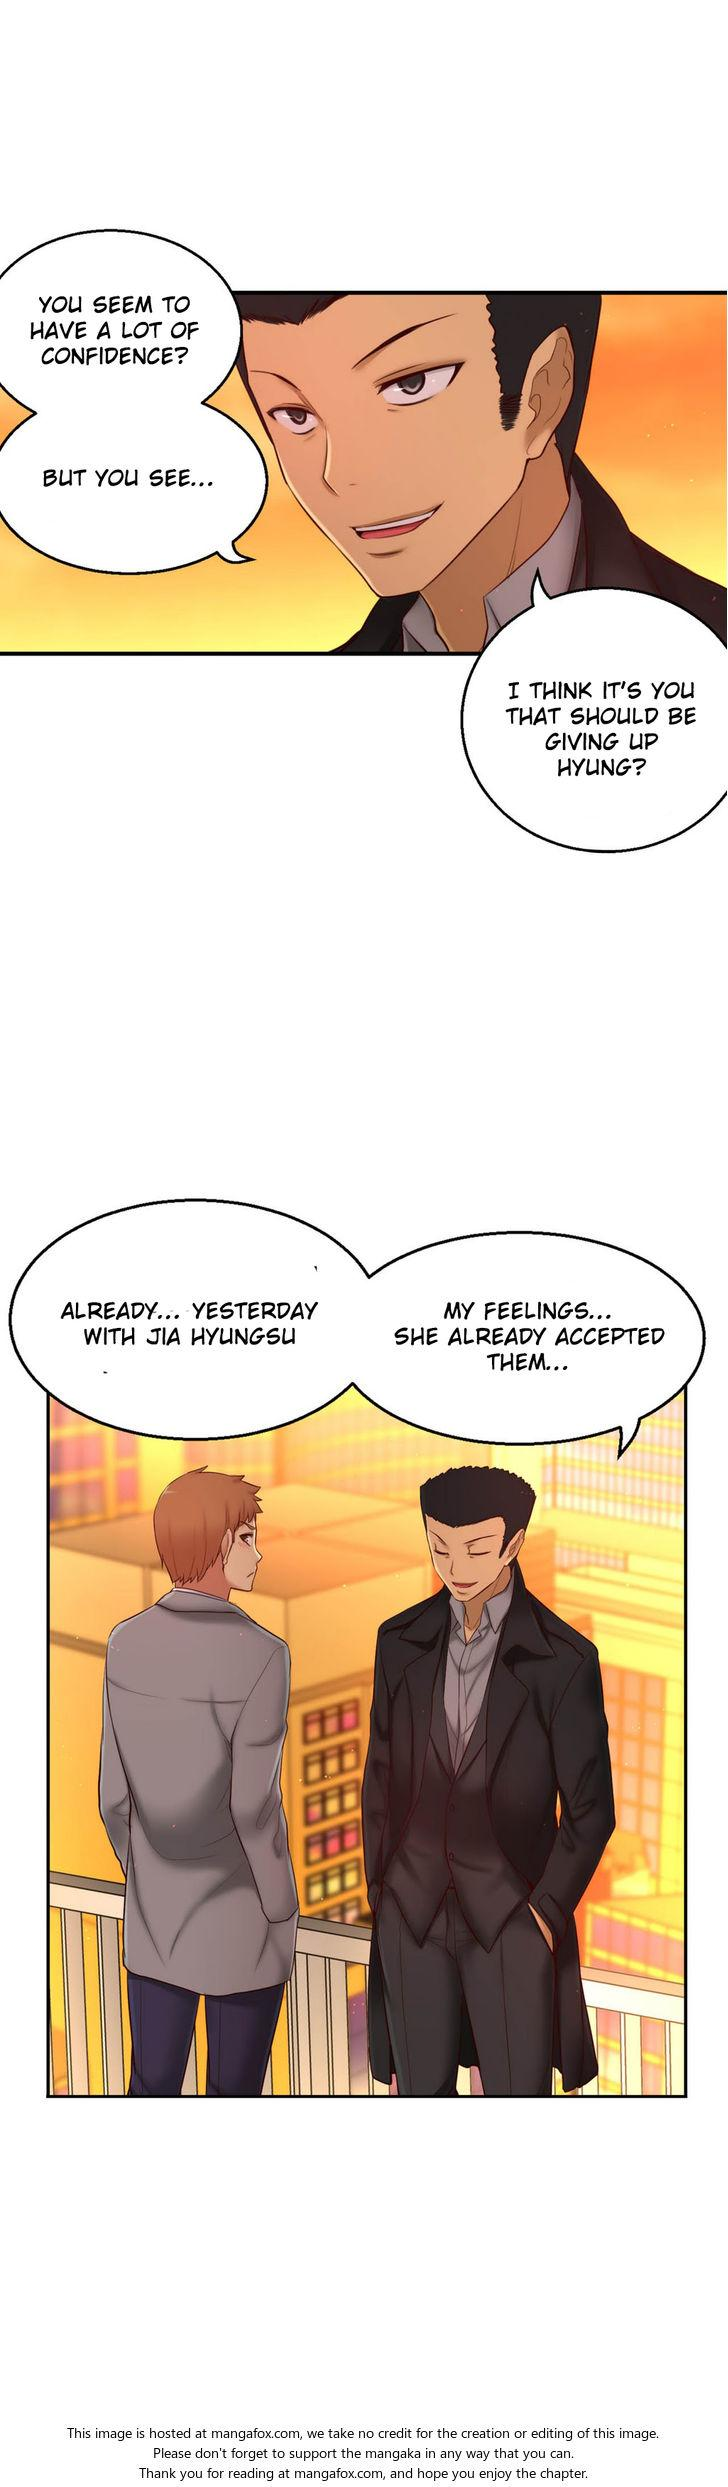 [Donggul Gom] She is Young (English) Part 1/2 1450